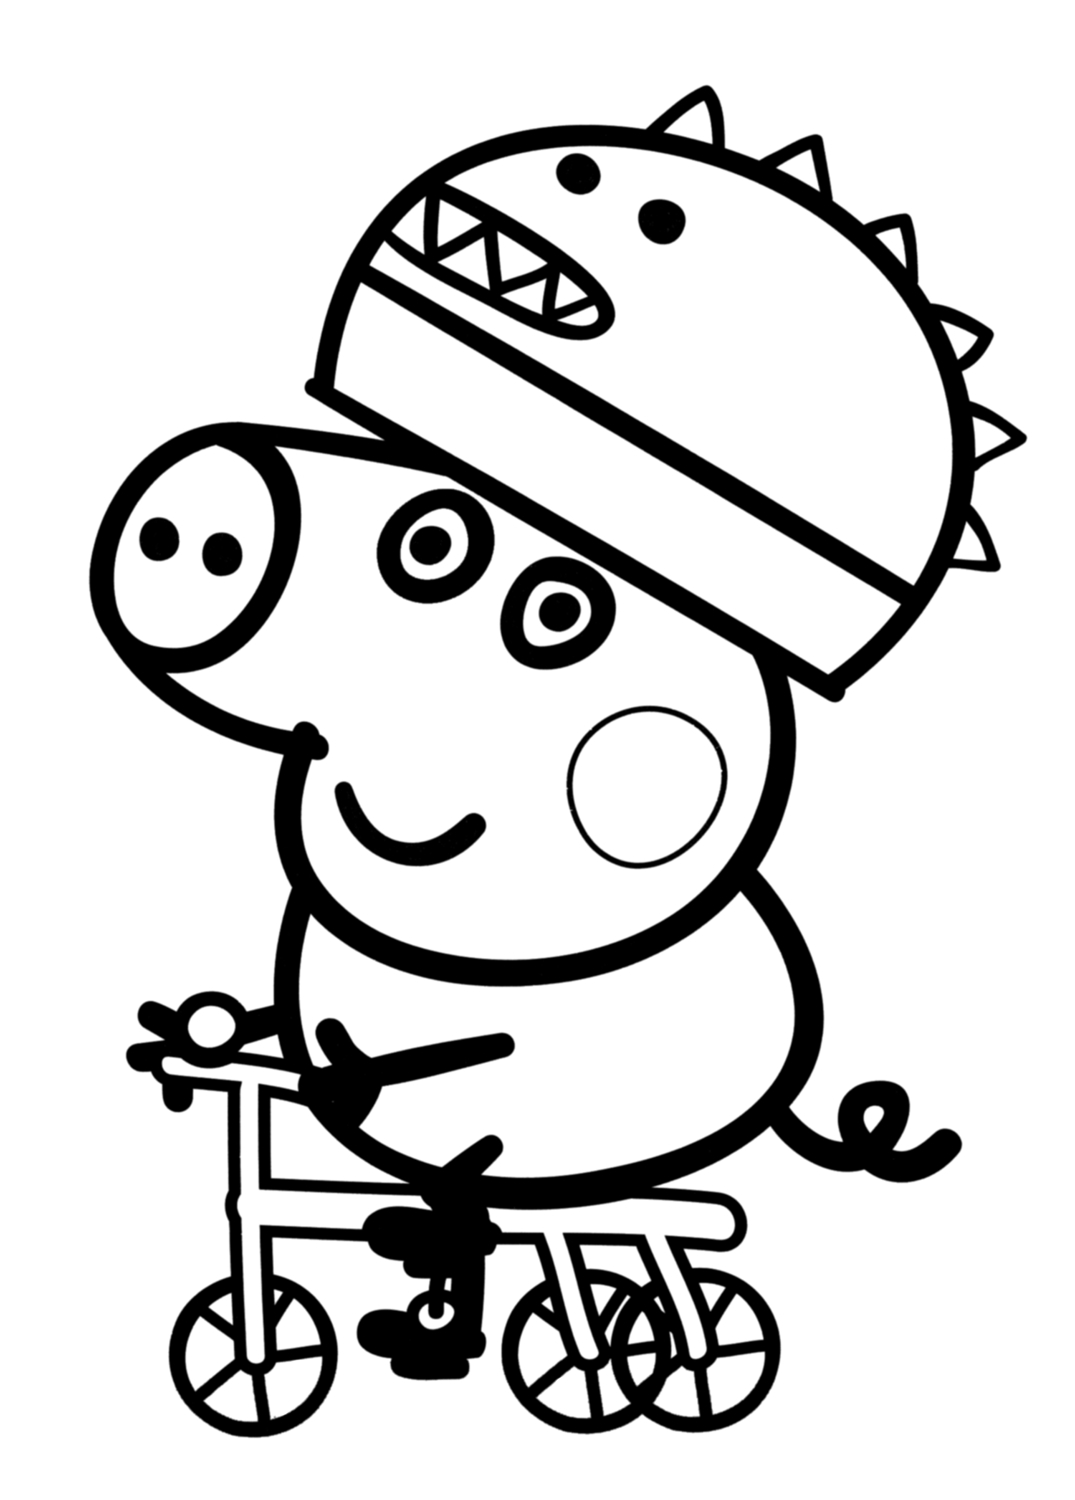 Bicycle Peppa Pig George Coloring Pages #2568 Peppa Pig encequiconcerne Peppa Pig A Colorier